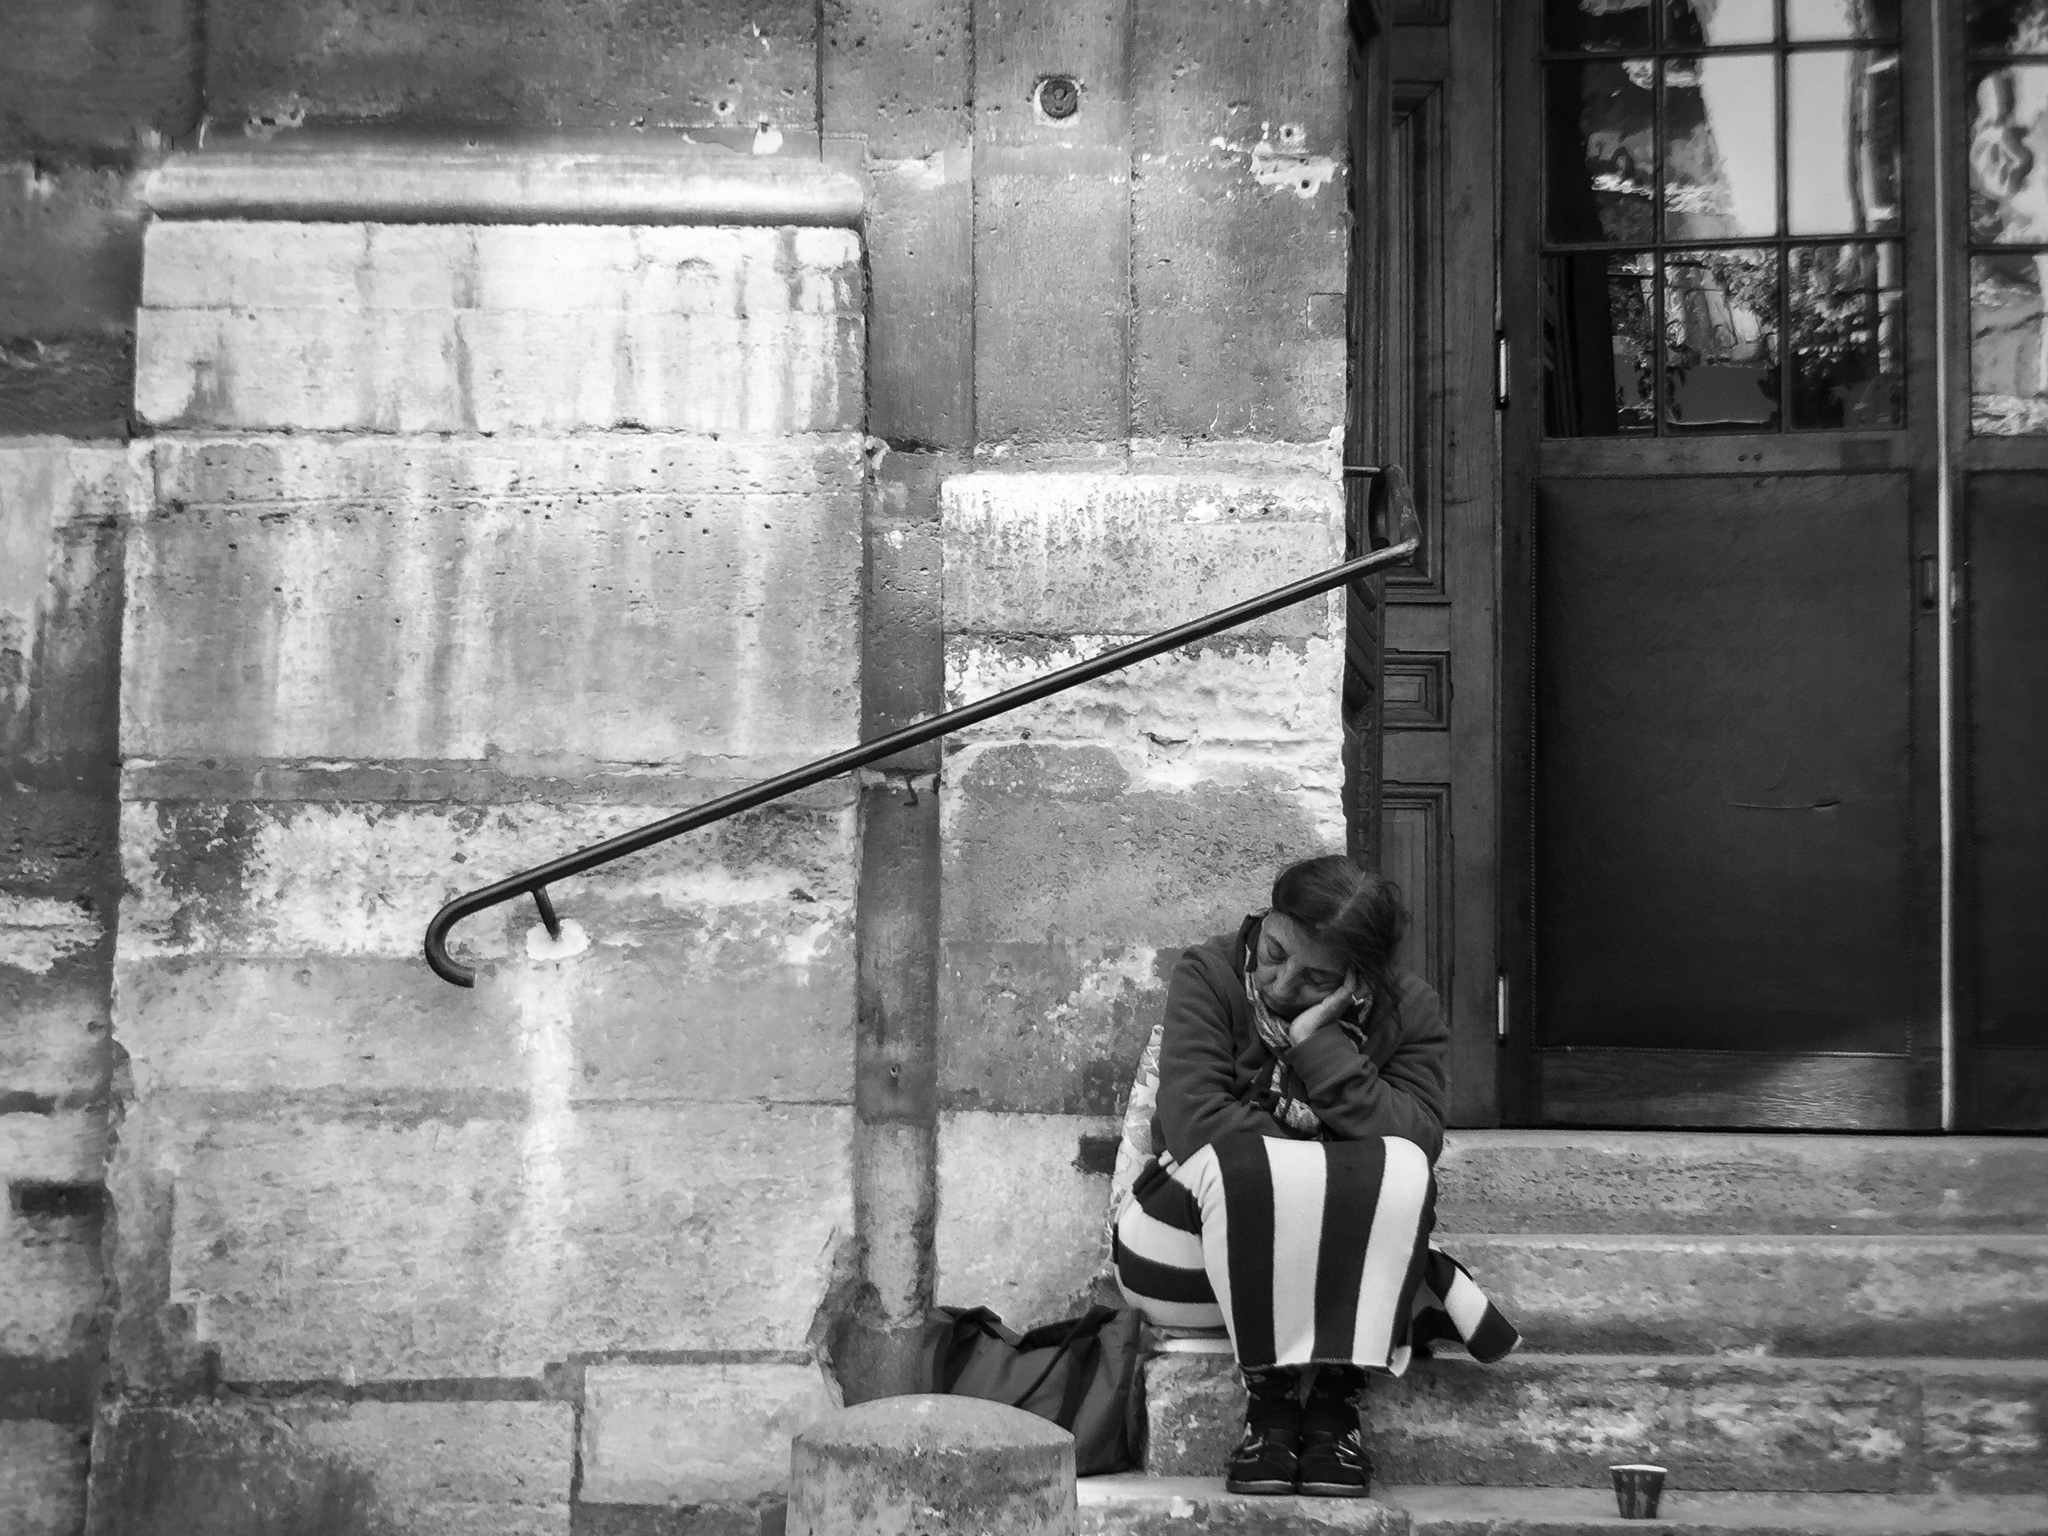 A woman begs for money on the steps of a church in Paris, France.